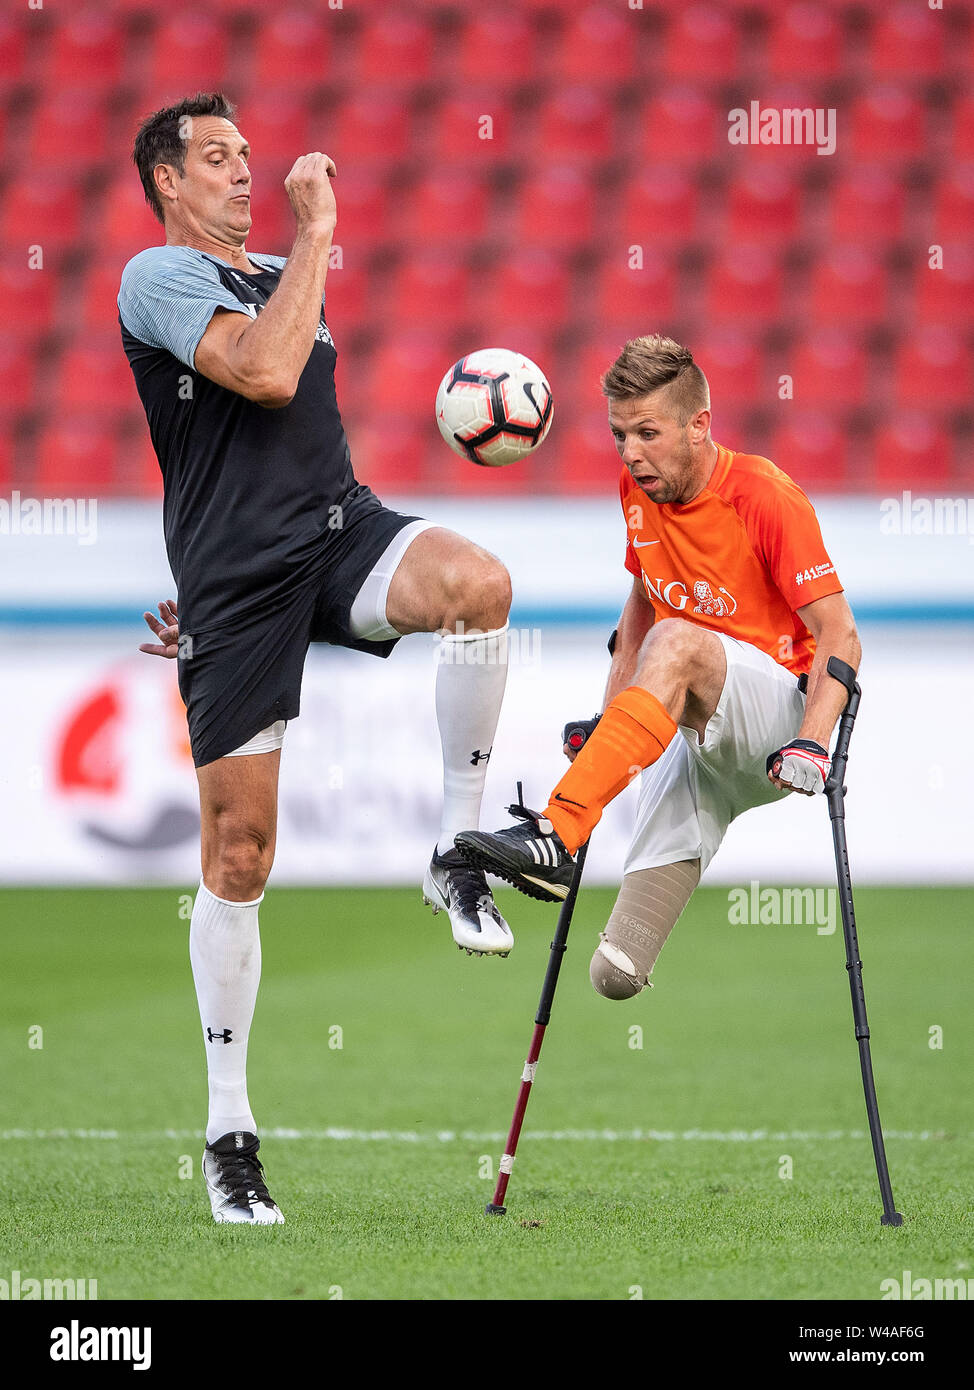 Leverkusen, Germany. 21st July, 2019. Soccer: Benefit soccer game 'Champions for Charity' in the BayArena. Seat volleyball player Christian Heintz (r) and basketball trainer Hansi Gnad fight for the ball. Credit: Marius Becker/dpa/Alamy Live News - Stock Image